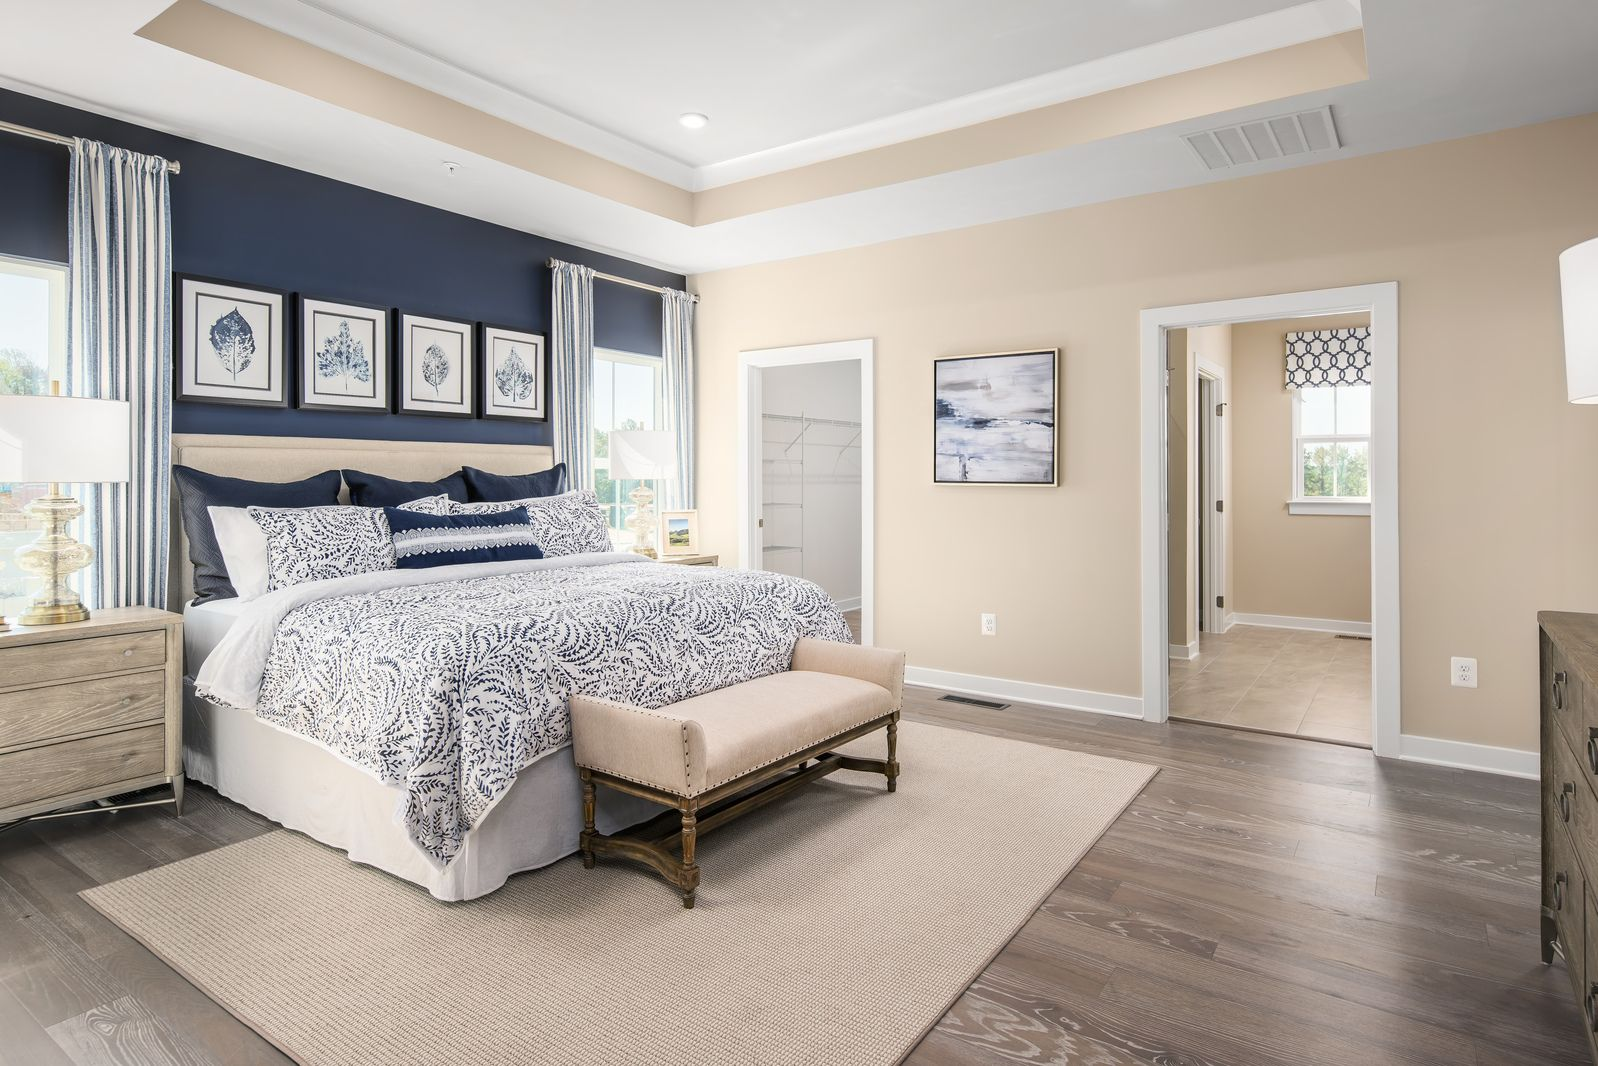 Bedroom featured in the Cumberland By Ryan Homes in Cleveland, OH